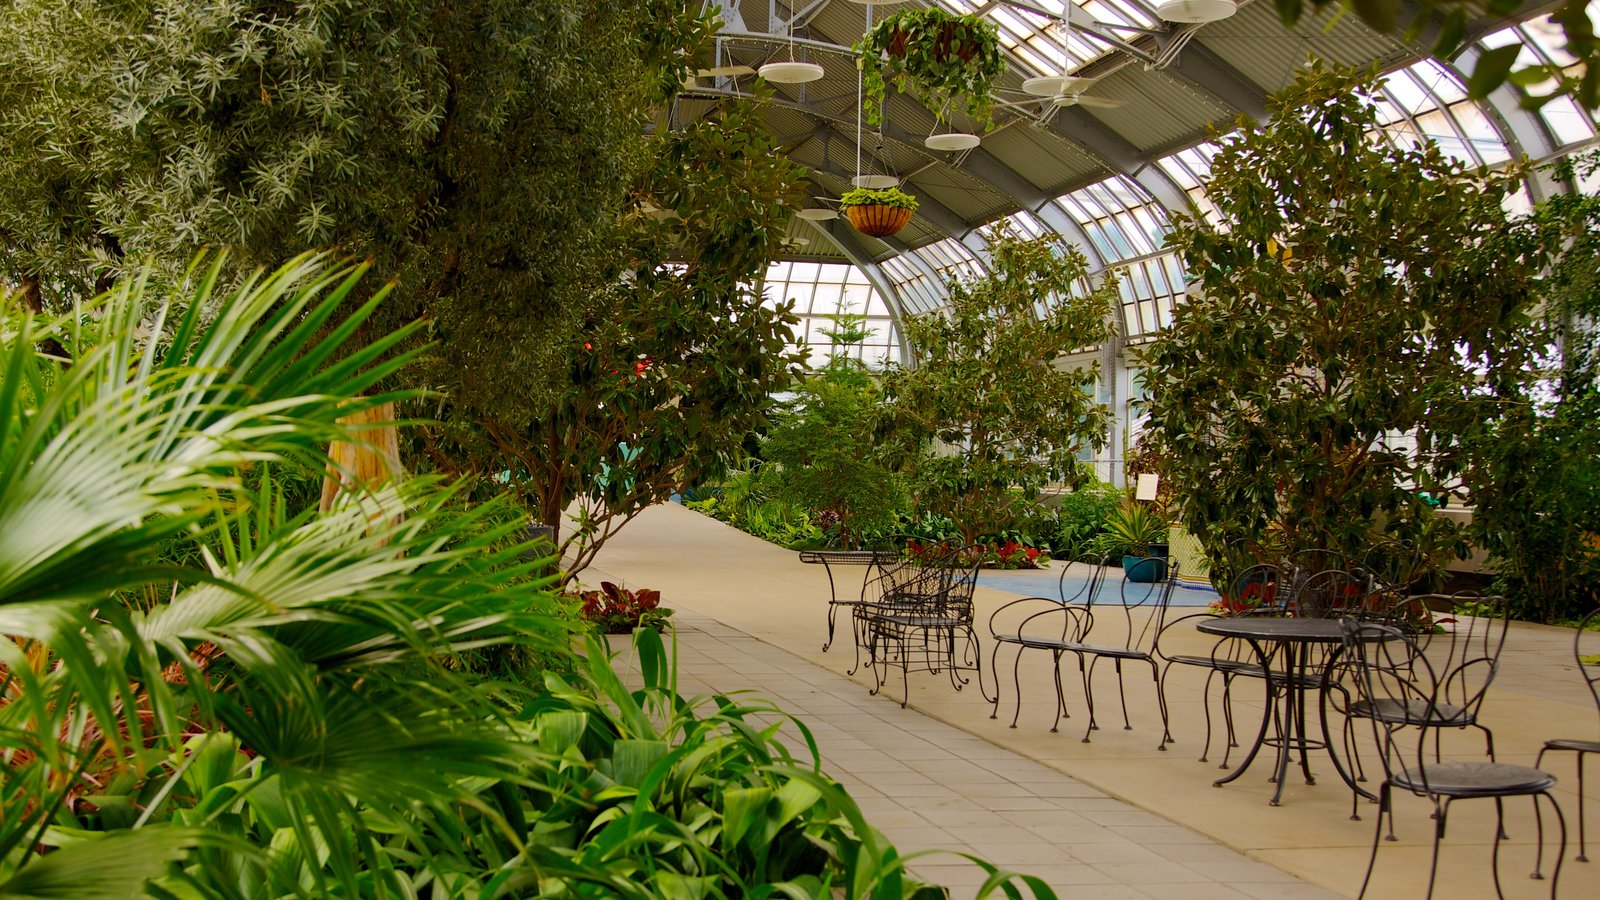 Garfield Park Conservatory showing a garden and interior views